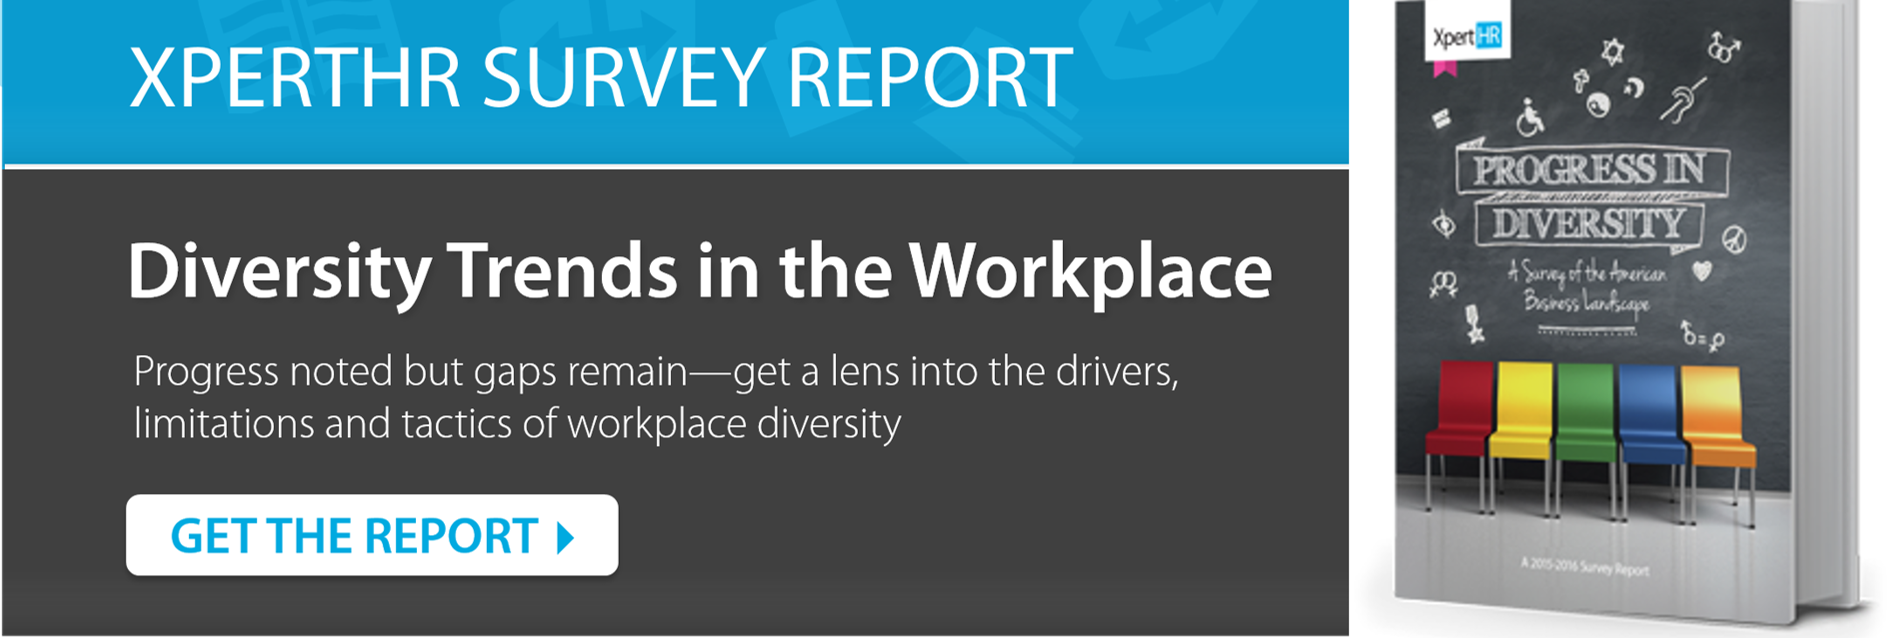 Diversity Survey Report 2015-16 - CTA